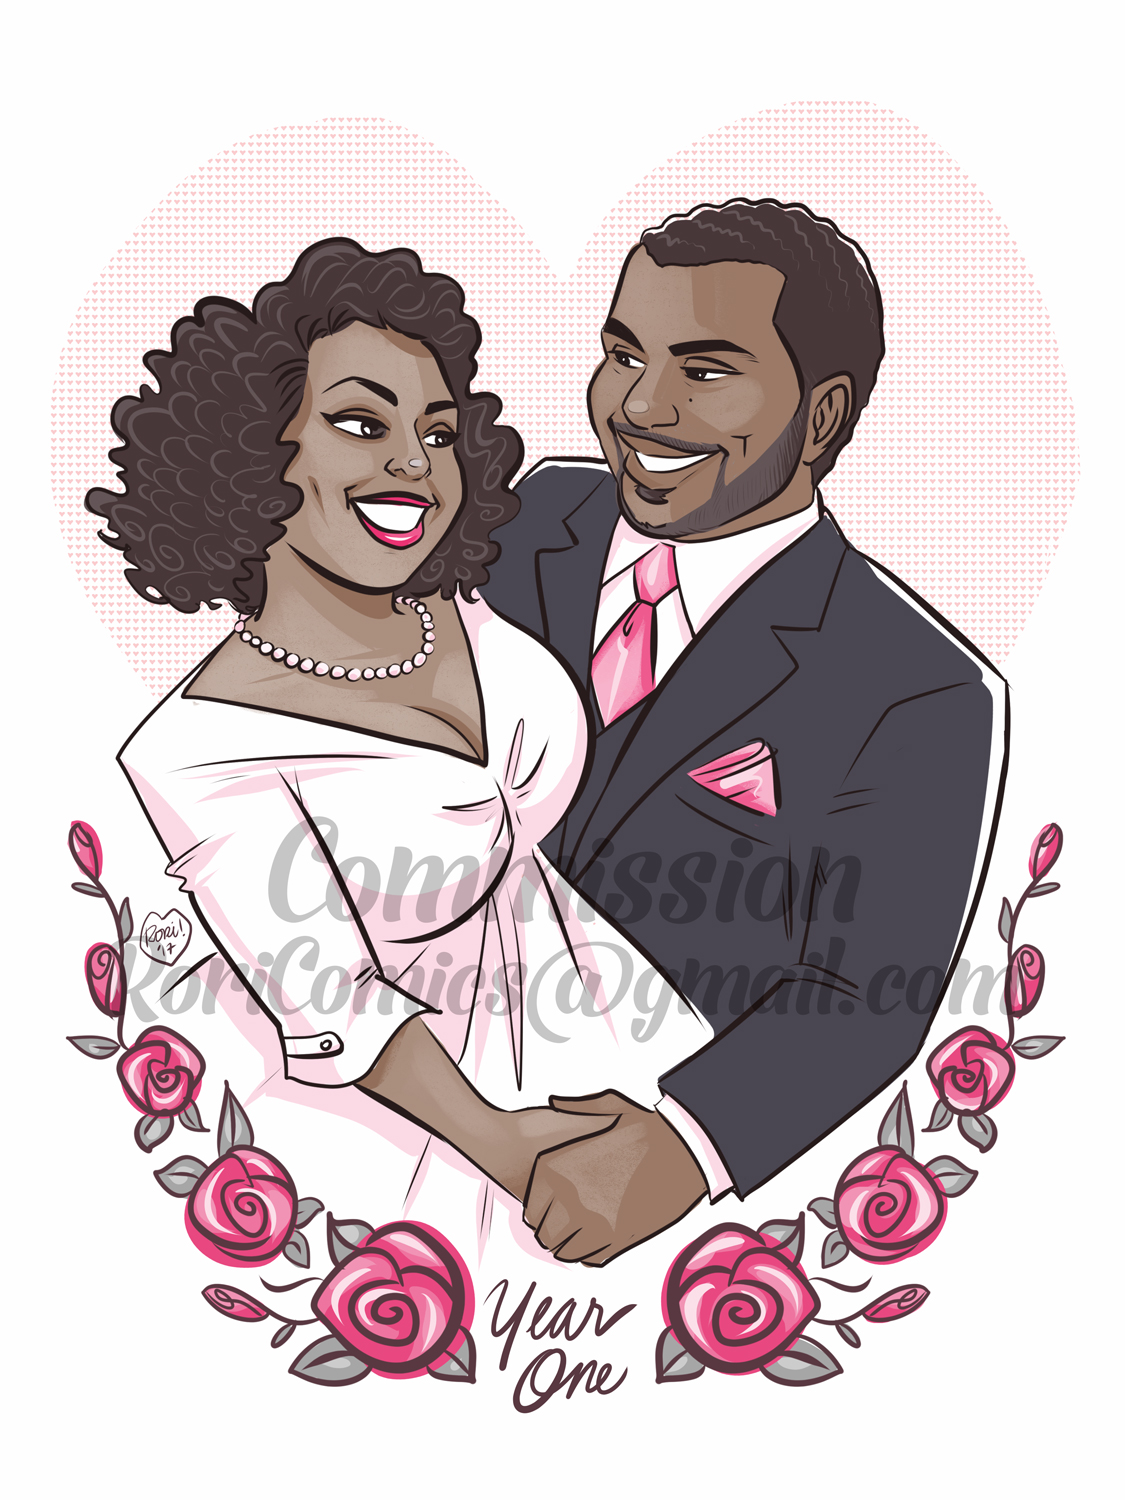 Couples Commission: Anniversary